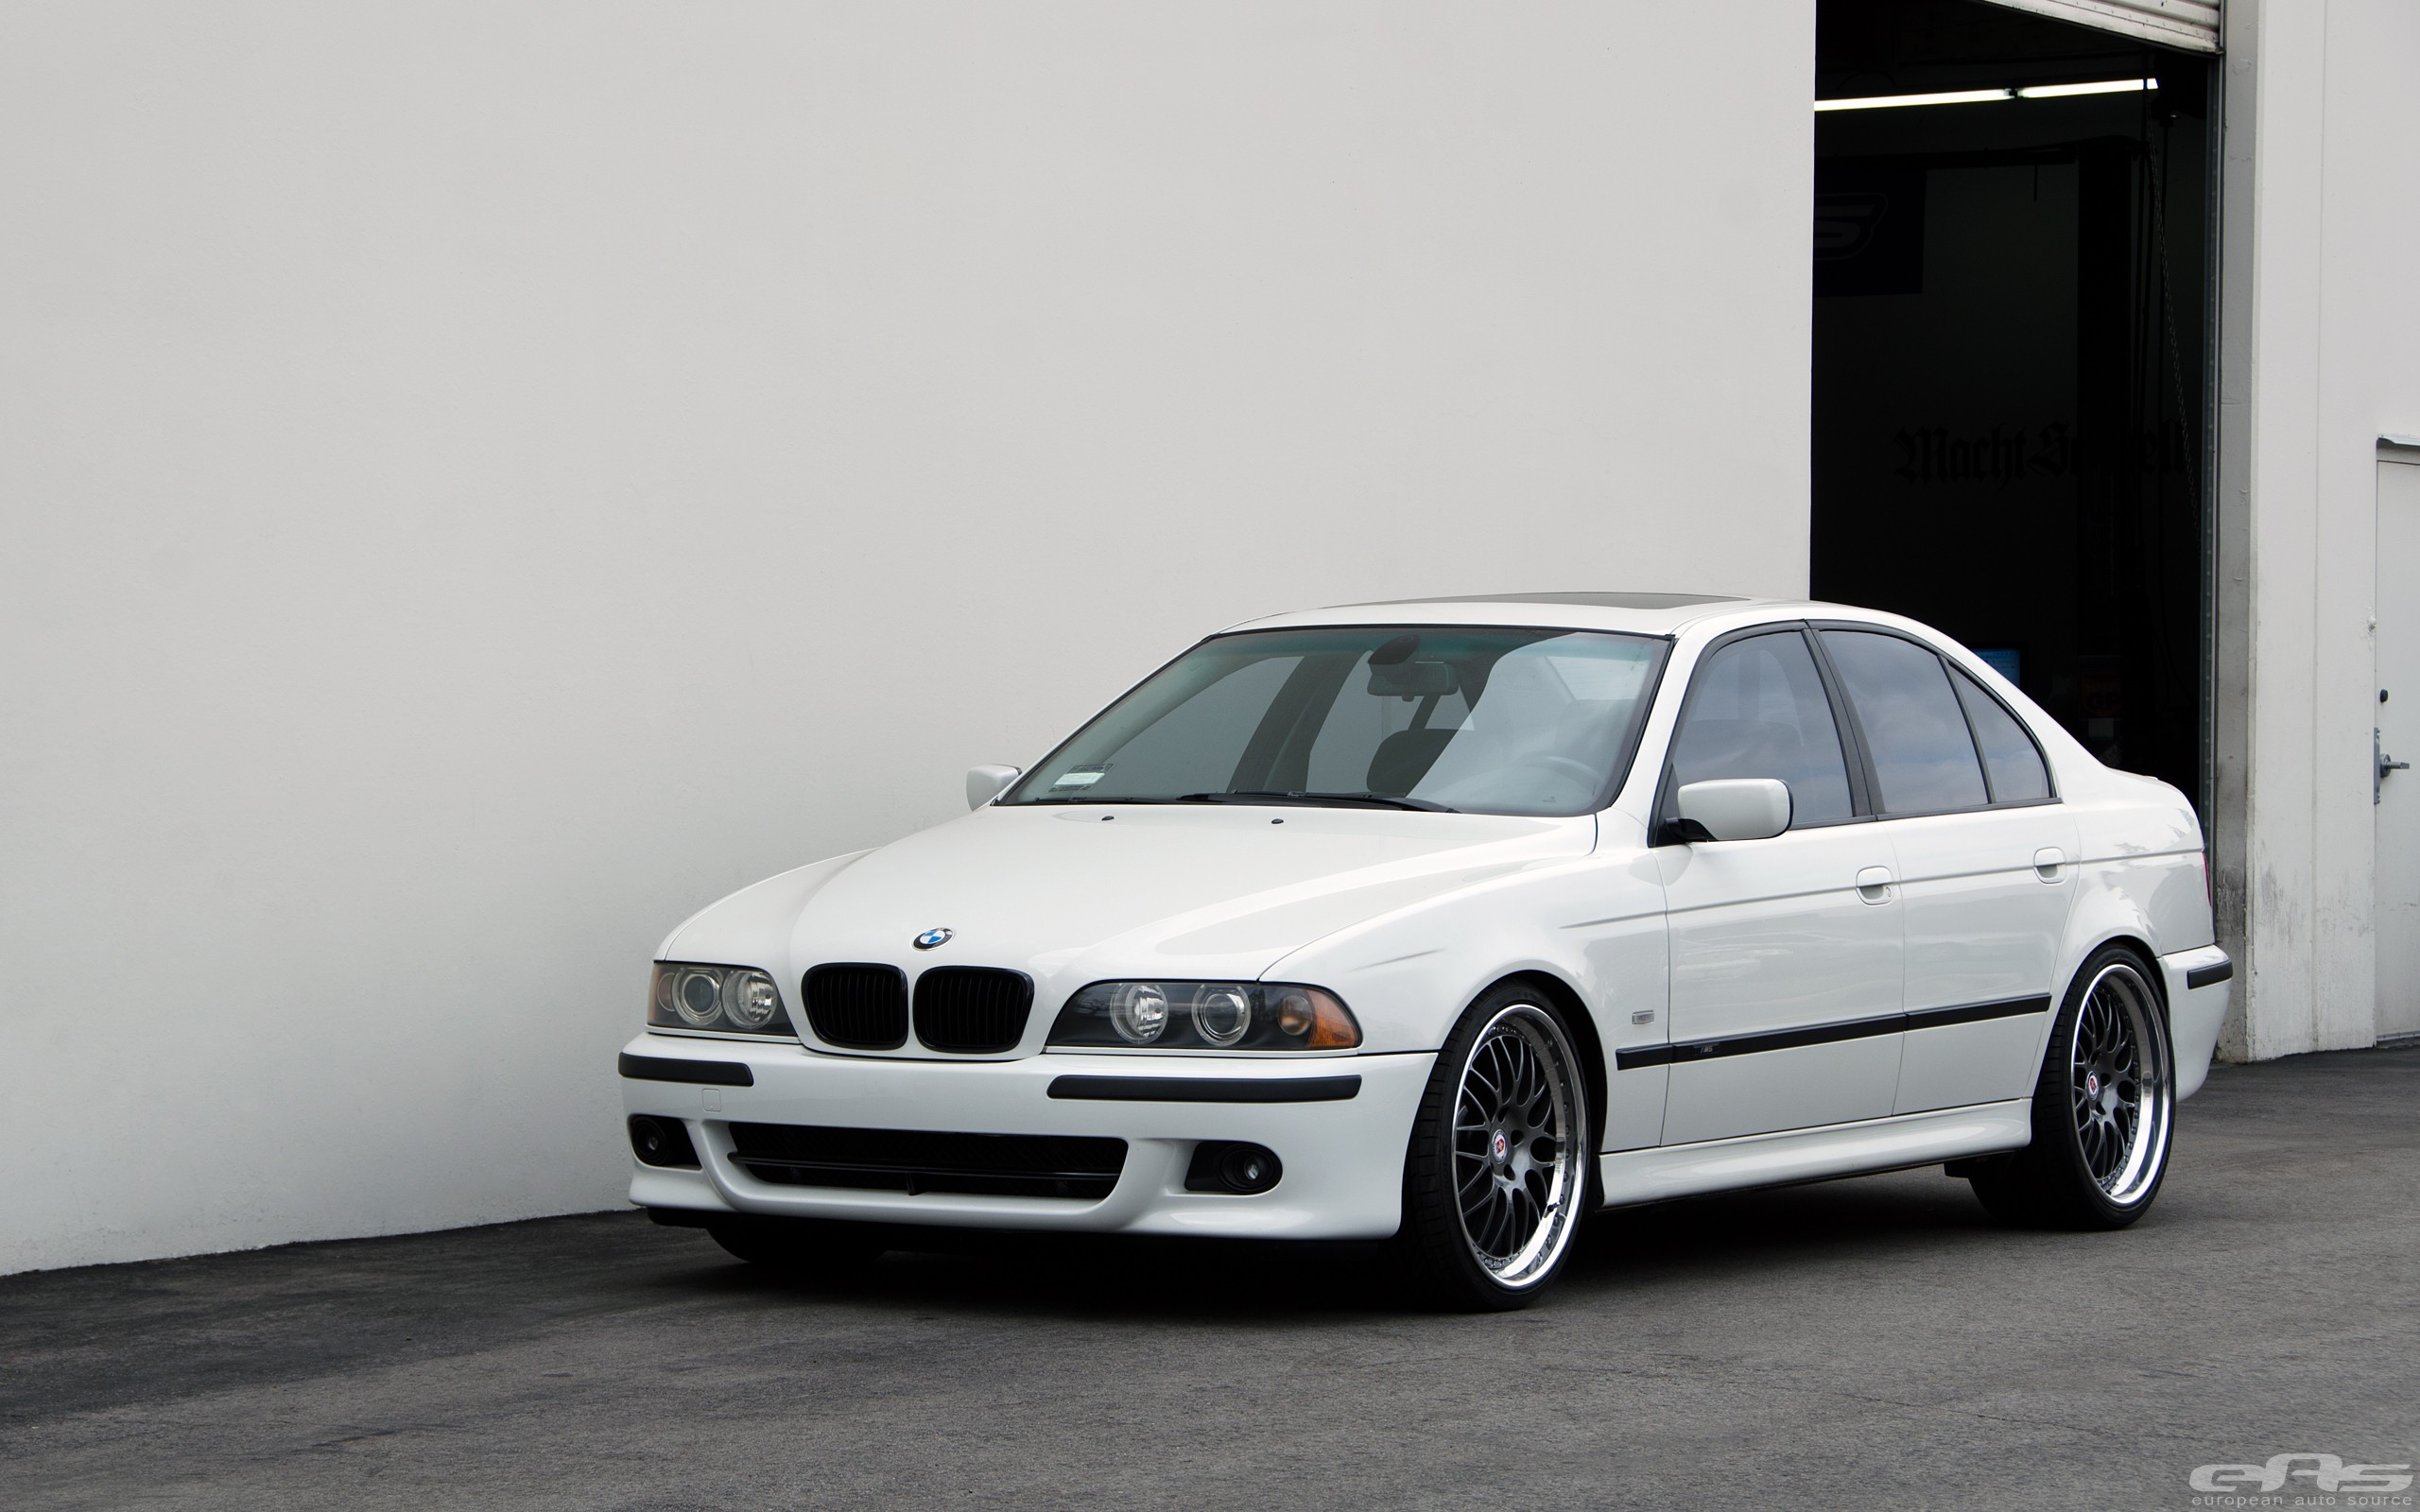 bmw e39 530i gets lower at eas still looks good autoevolution. Black Bedroom Furniture Sets. Home Design Ideas